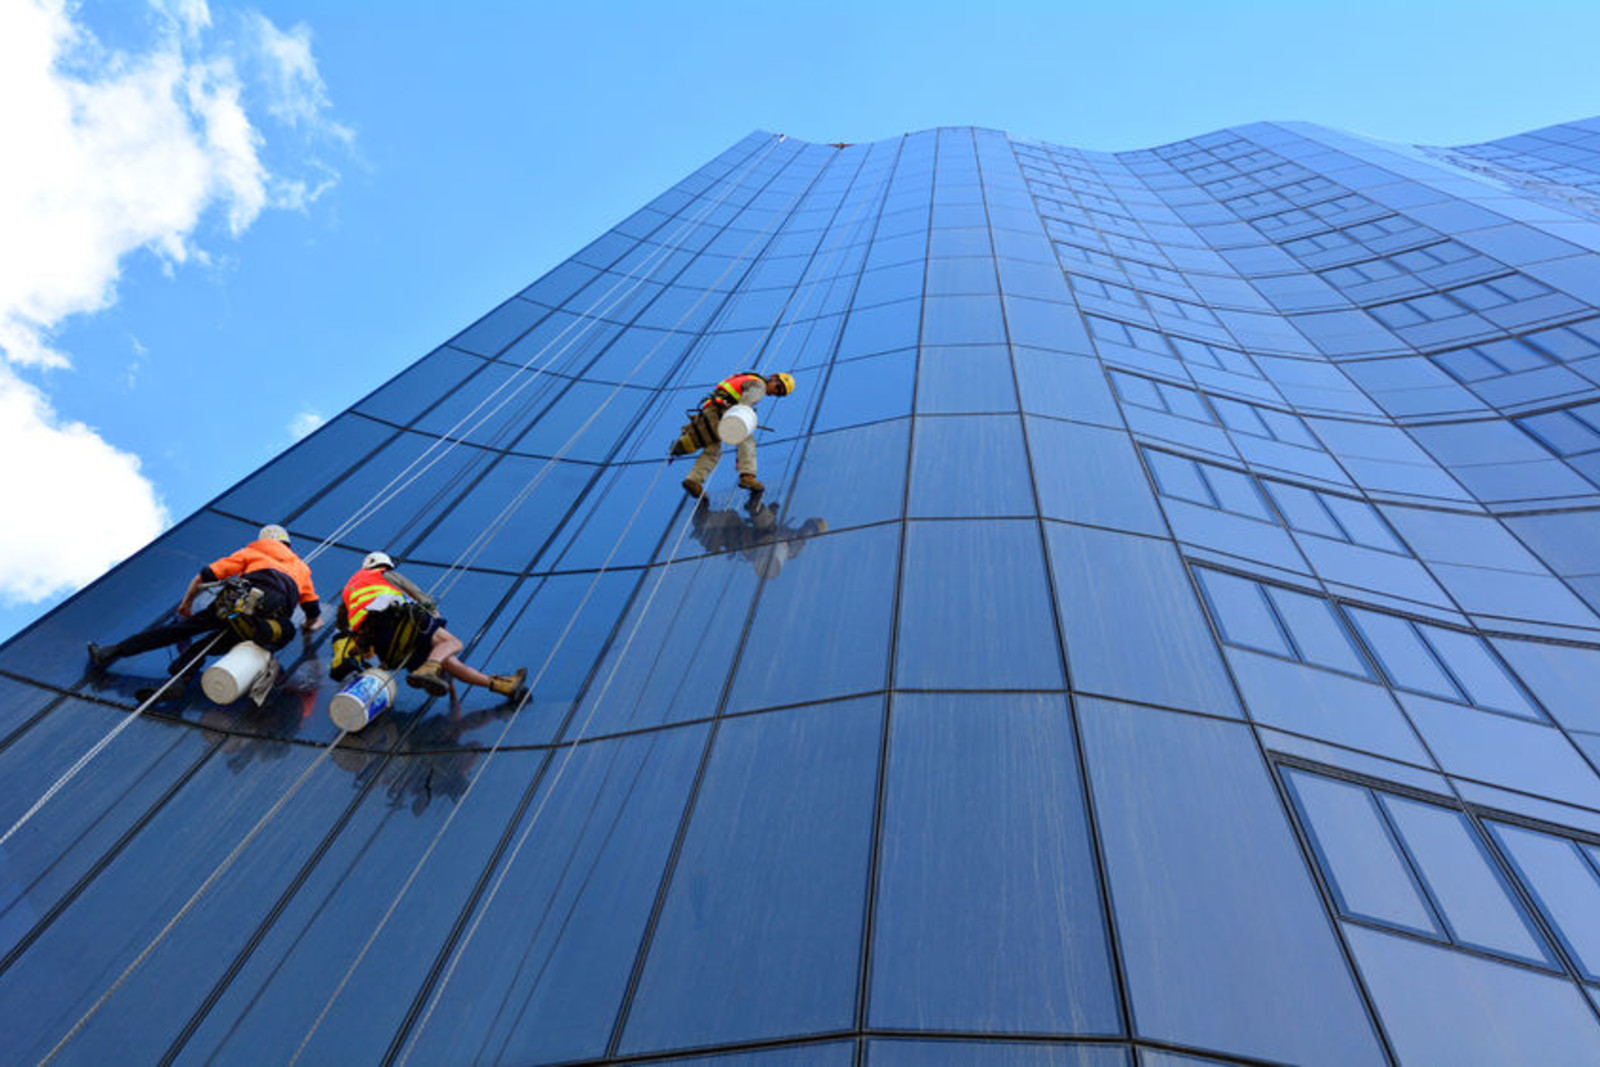 window cleaning austin round rock exterior window cleaning for office spaces near you regardless if you work andor manage retail store hospital school gym or any other commercial window cleaning for offices commercial spaces near austin